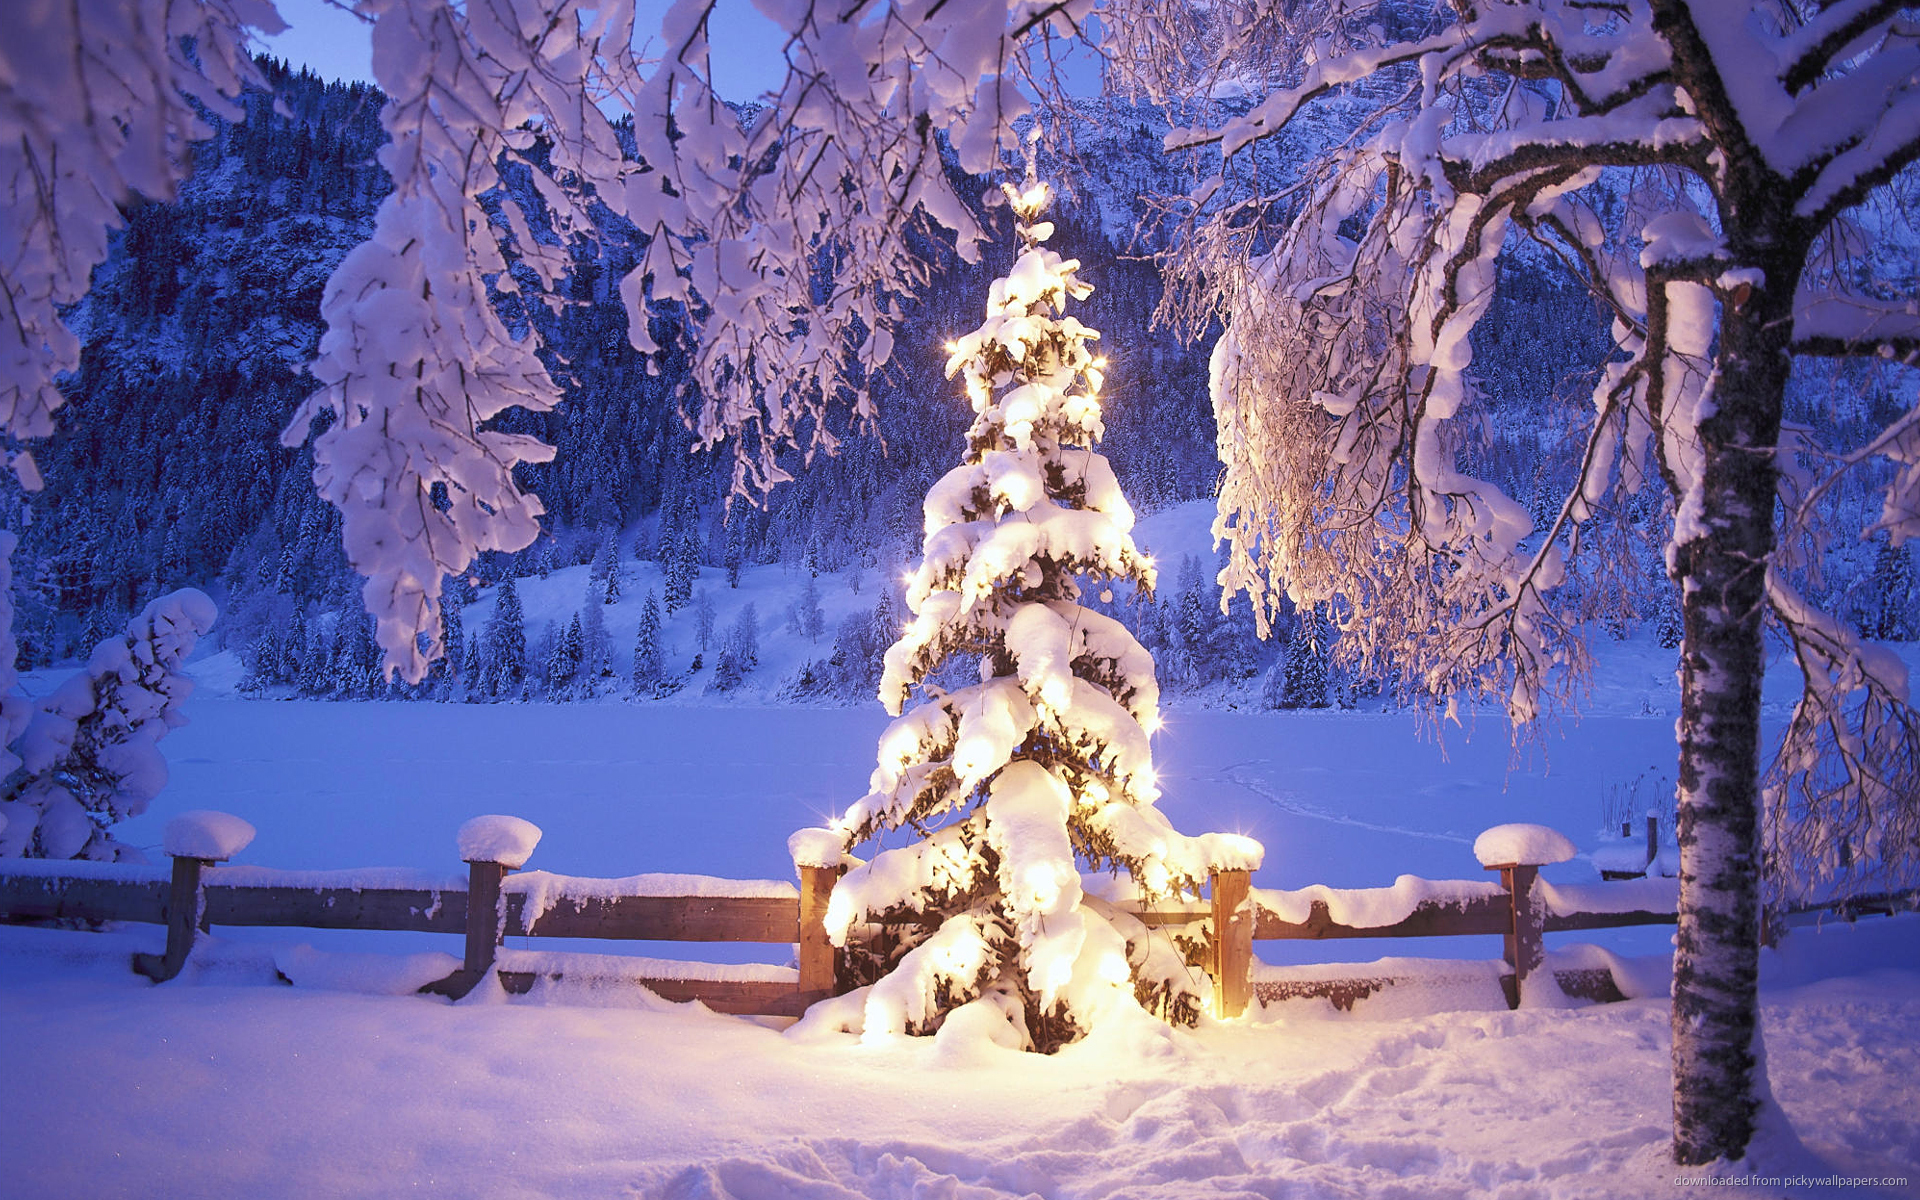 Download 1920x1200 Natural Christmas Tree In Snow Wallpaper